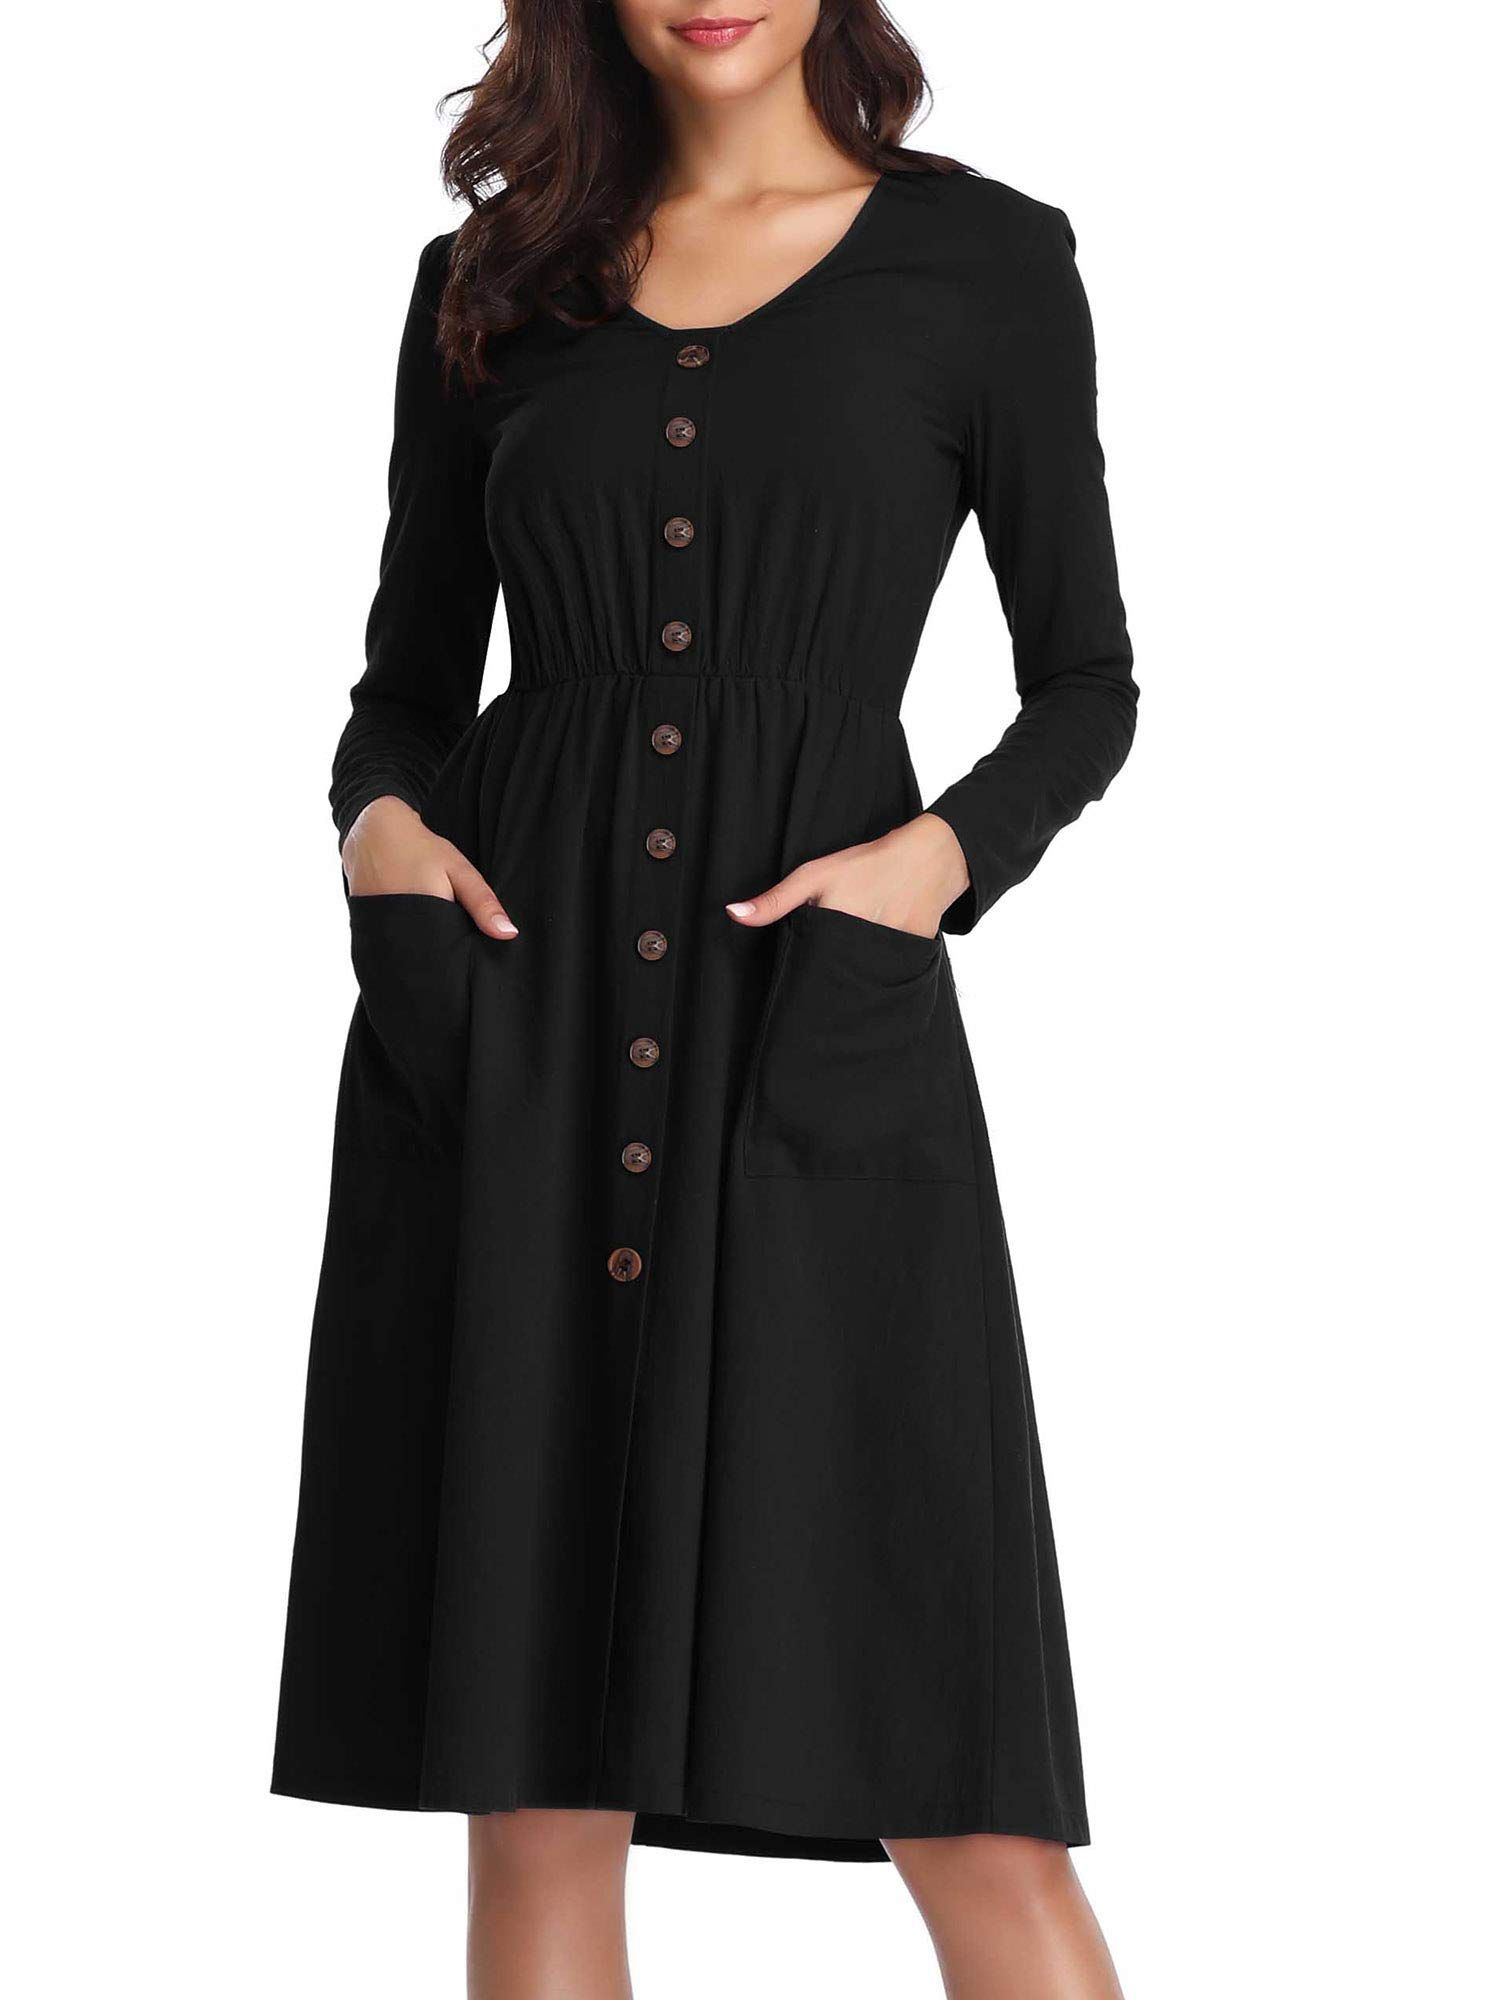 4260abd12d27 HUHOT Women's Long Sleeves V Neck Casual A-Line Flared Midi Dress with  Pockets